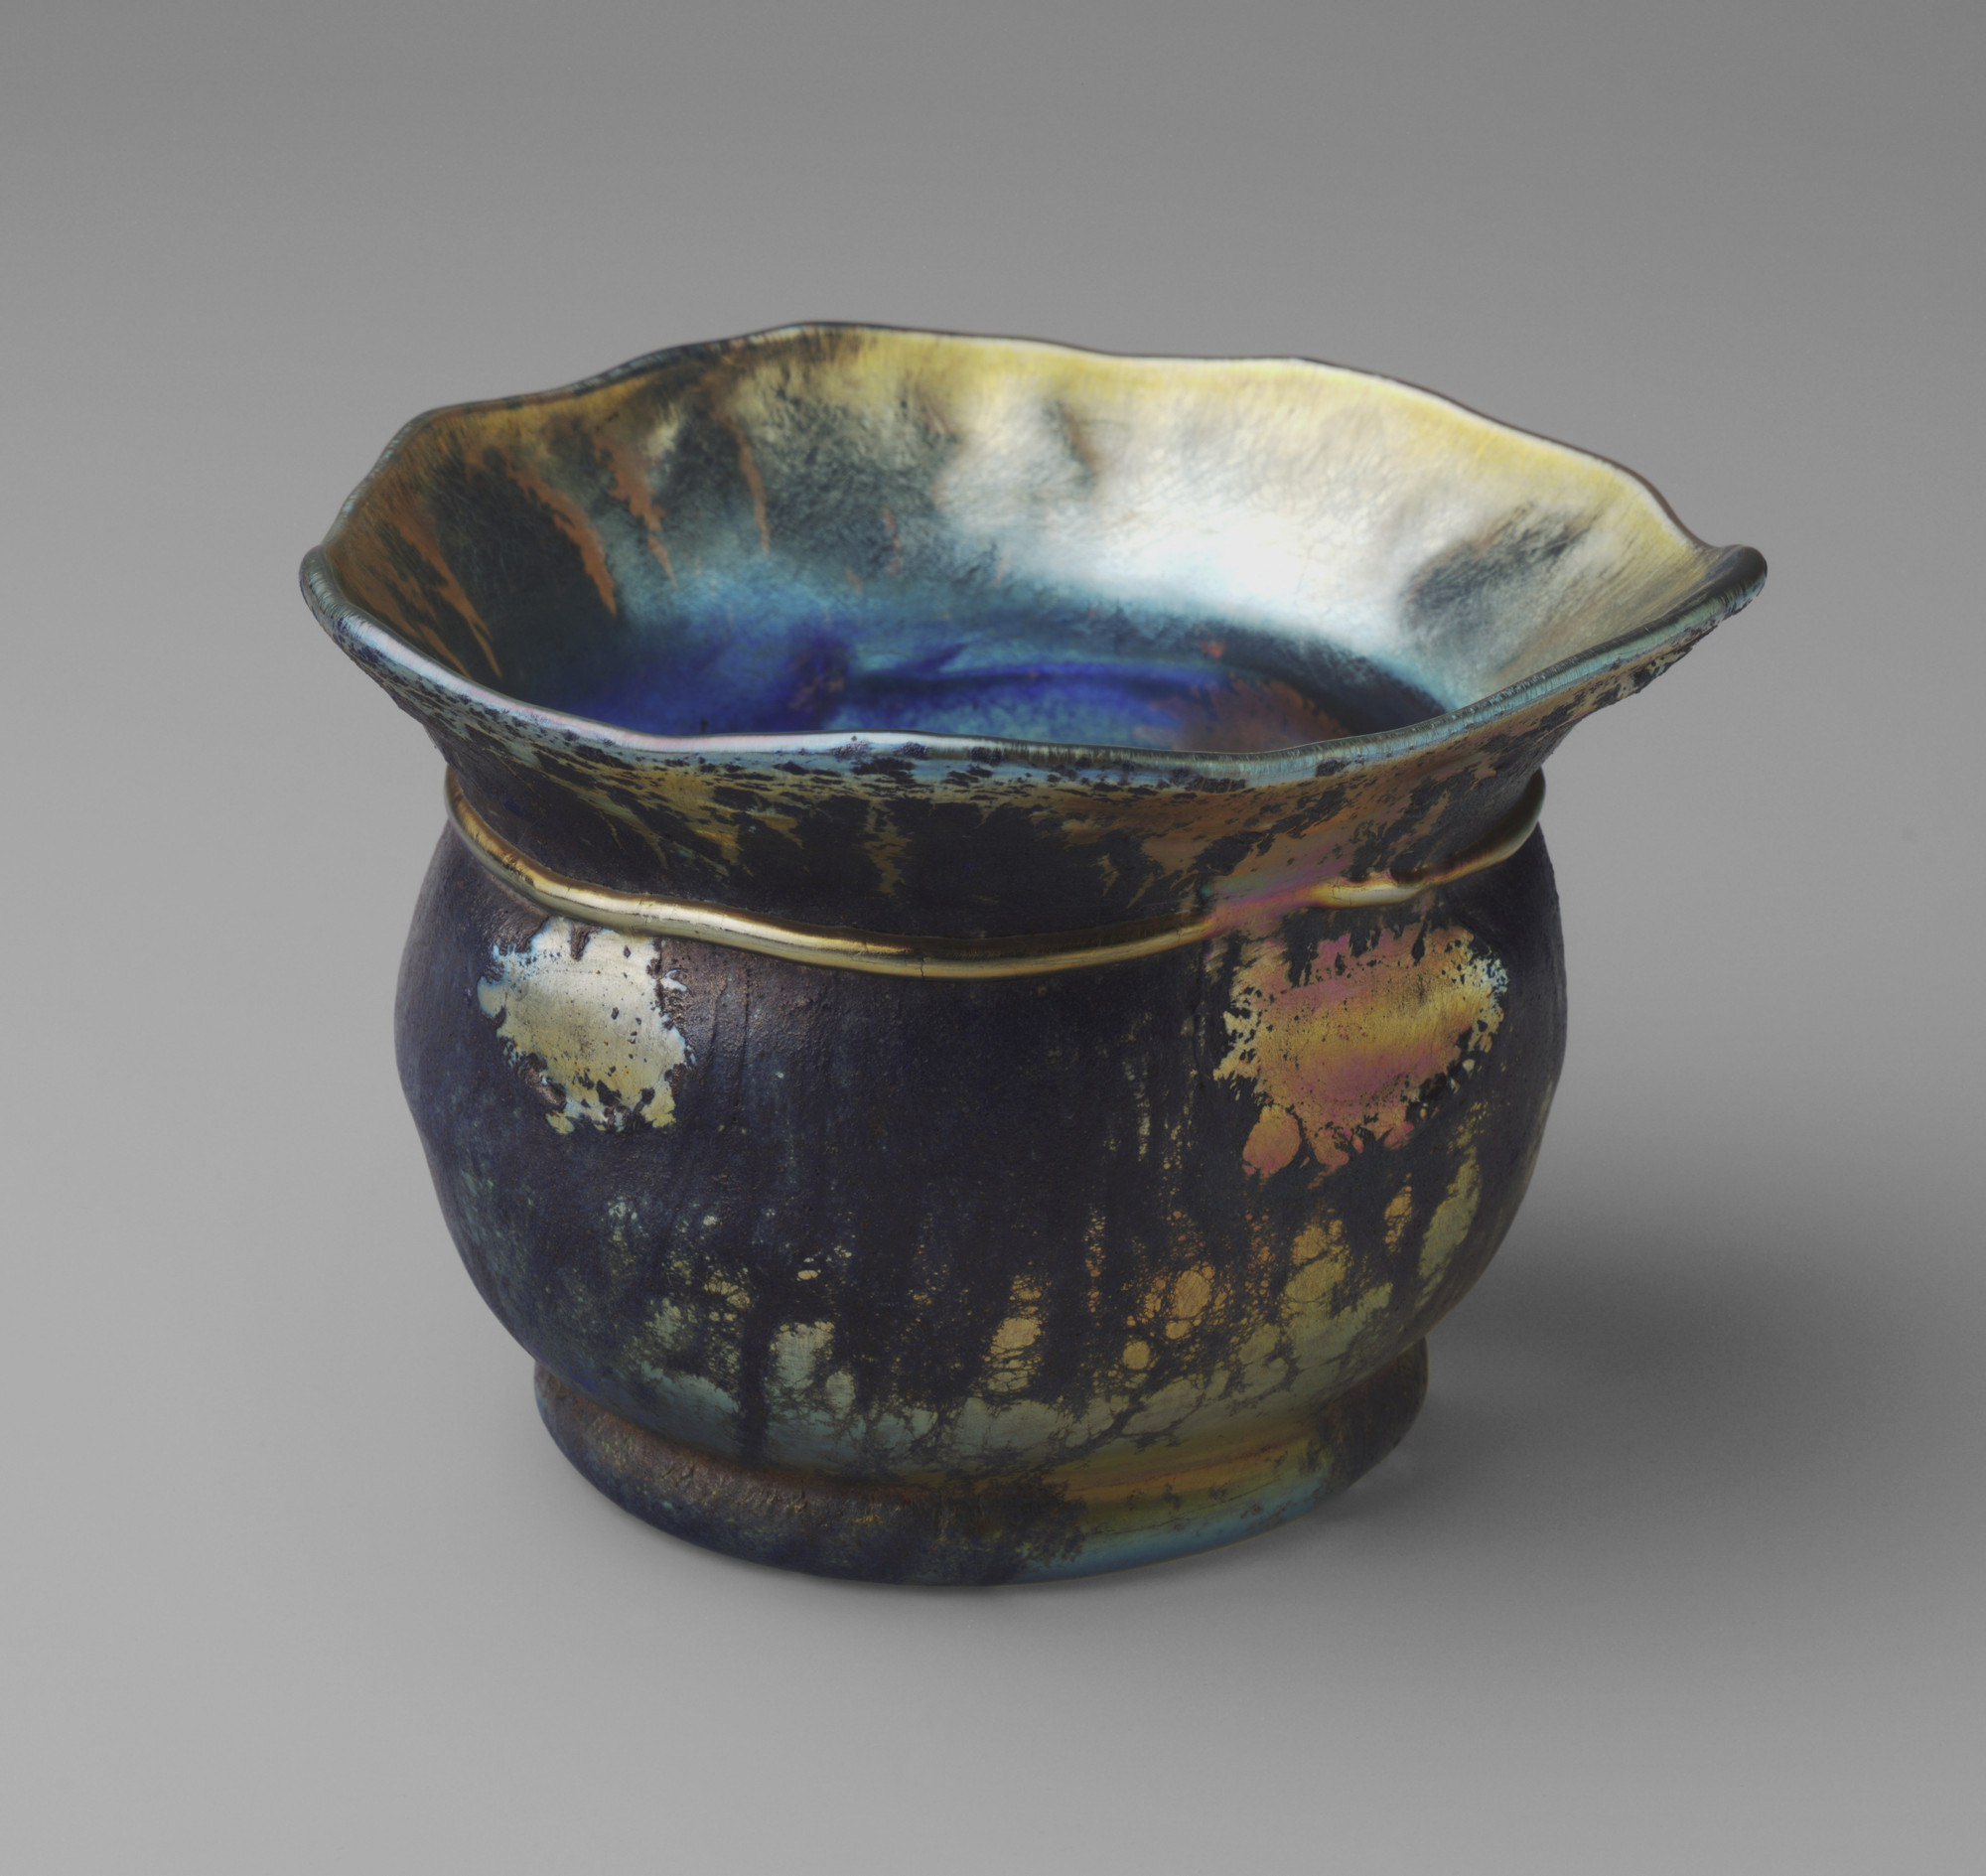 Louis Comfort Tiffany. Bowl. 1921